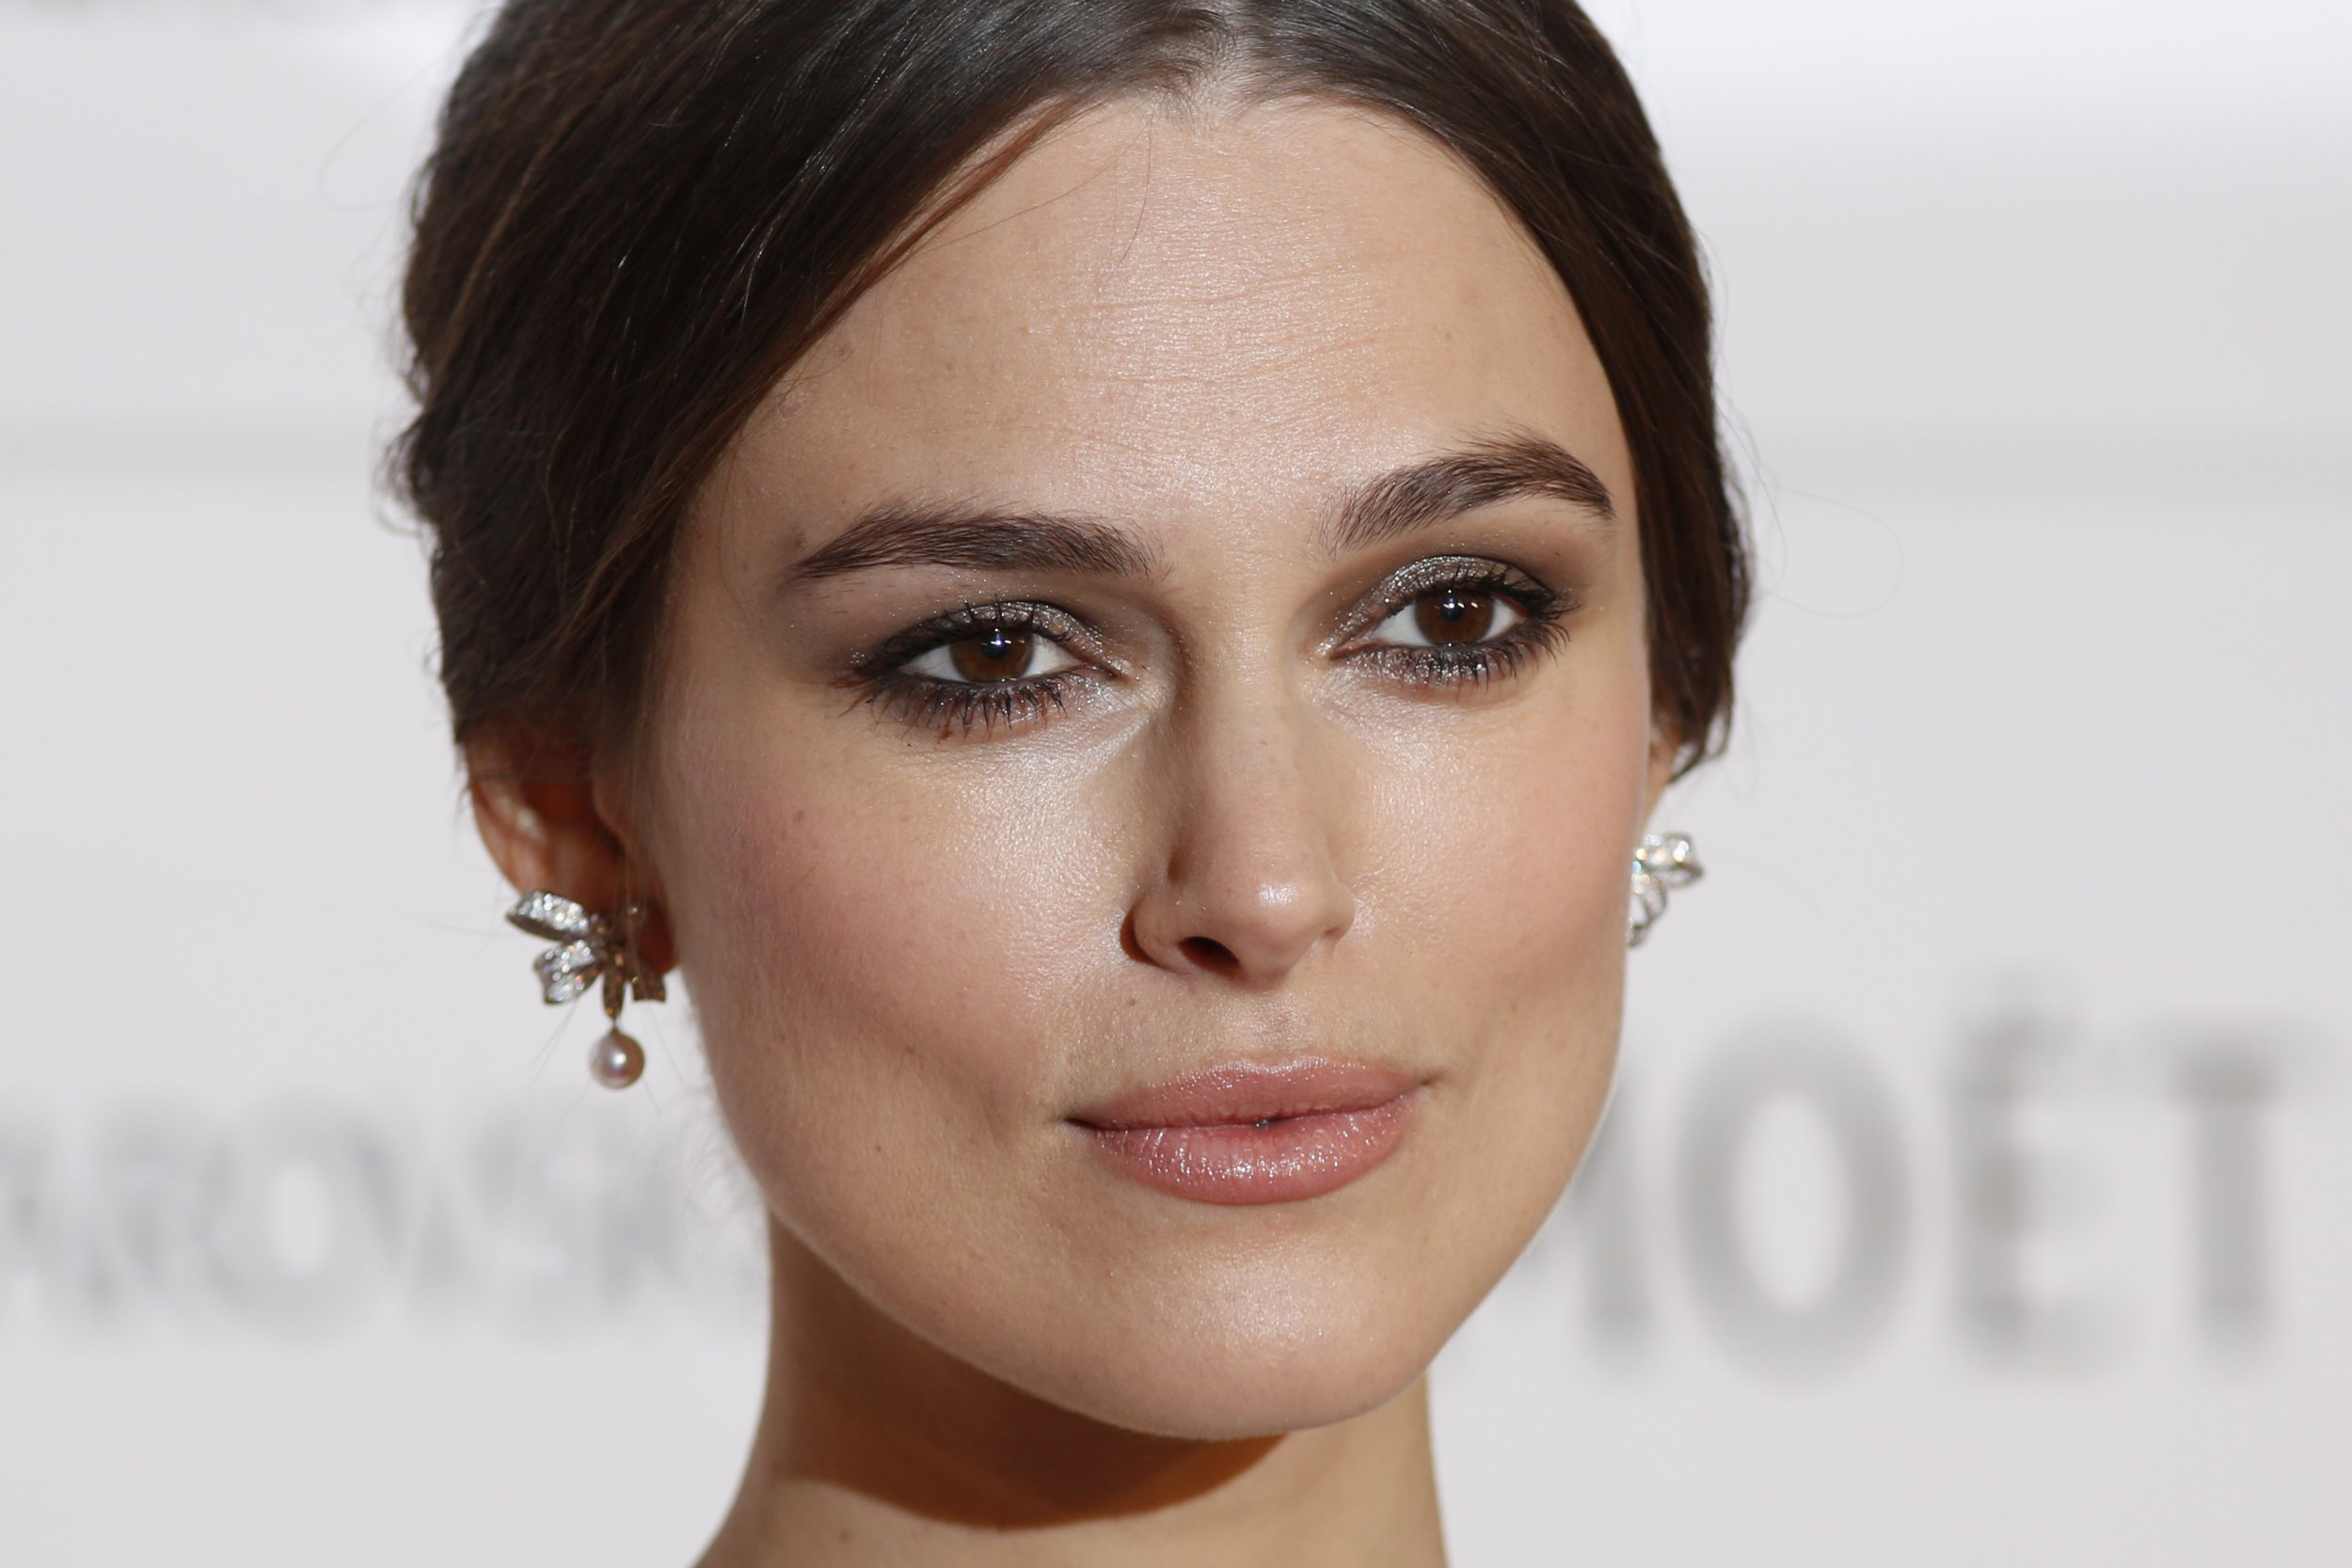 Actress Keira Knightle... Keira Knightley